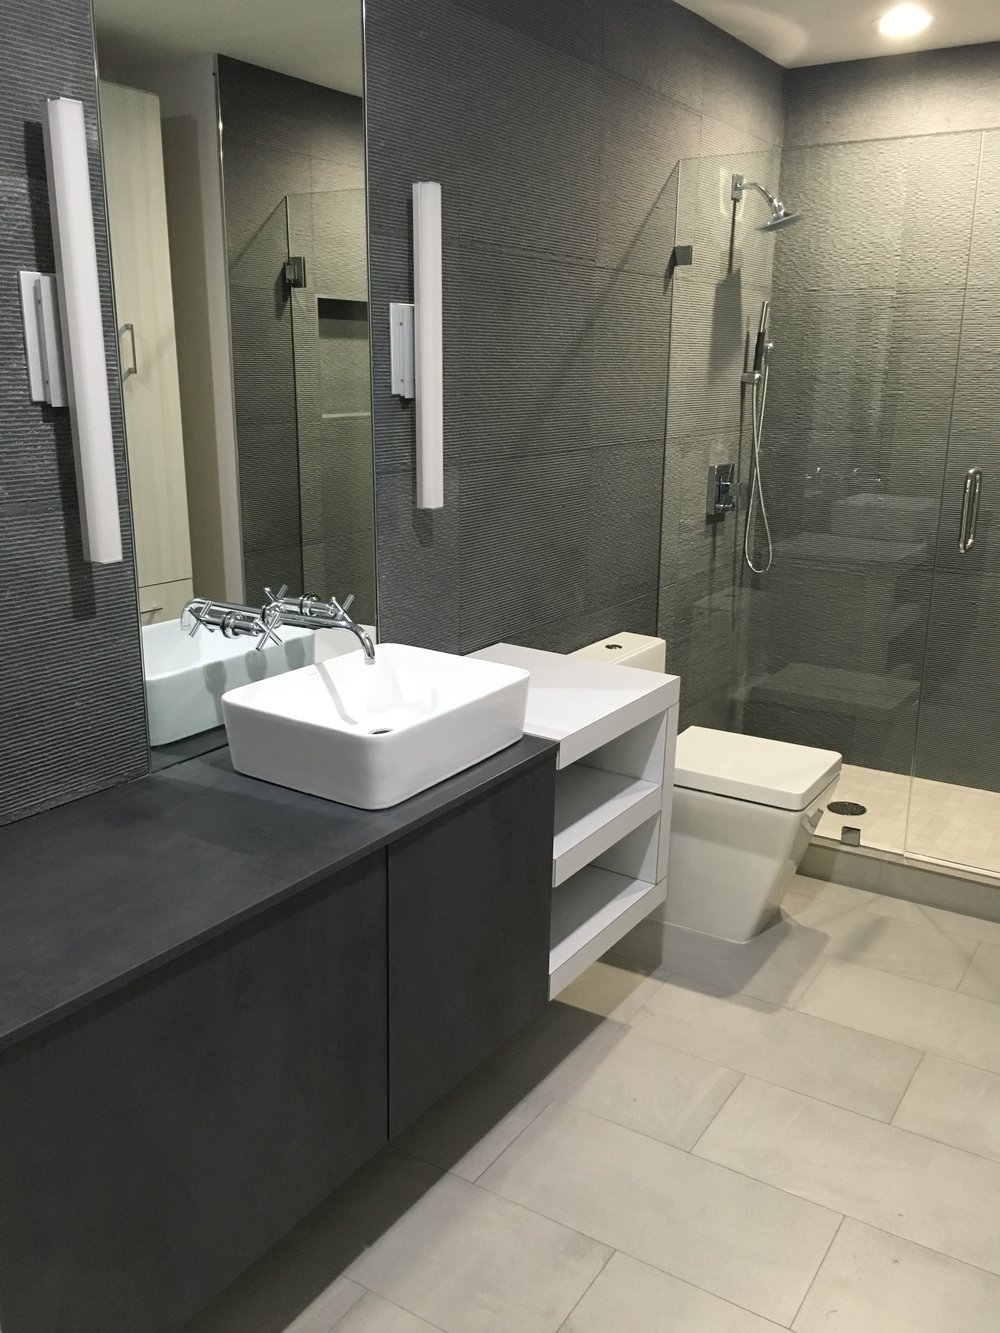 bathroom (12).JPG